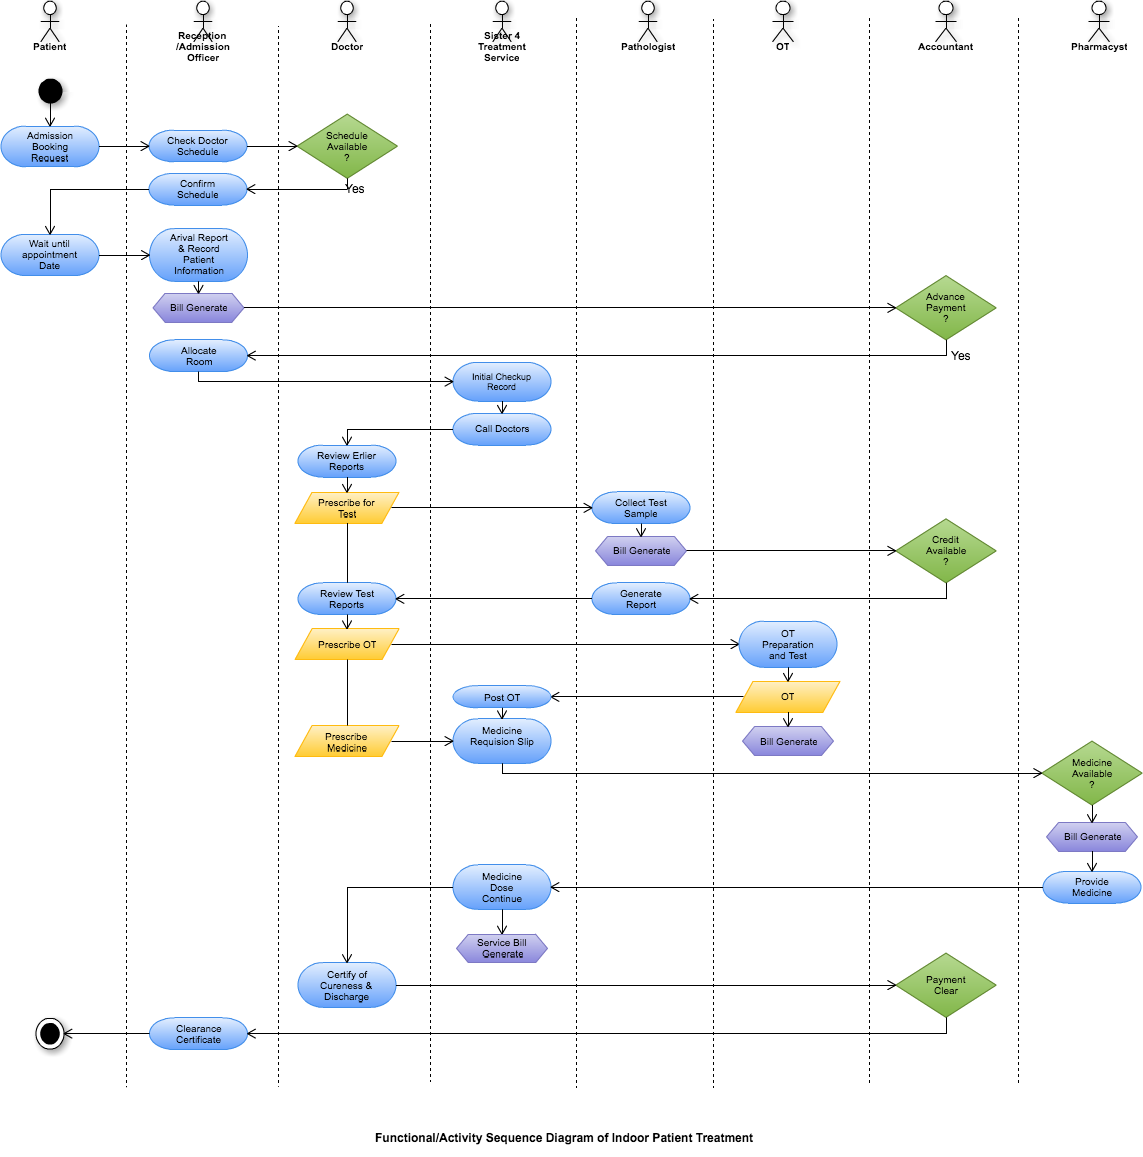 Diagram Created with Cacoo by Ashim Sikder